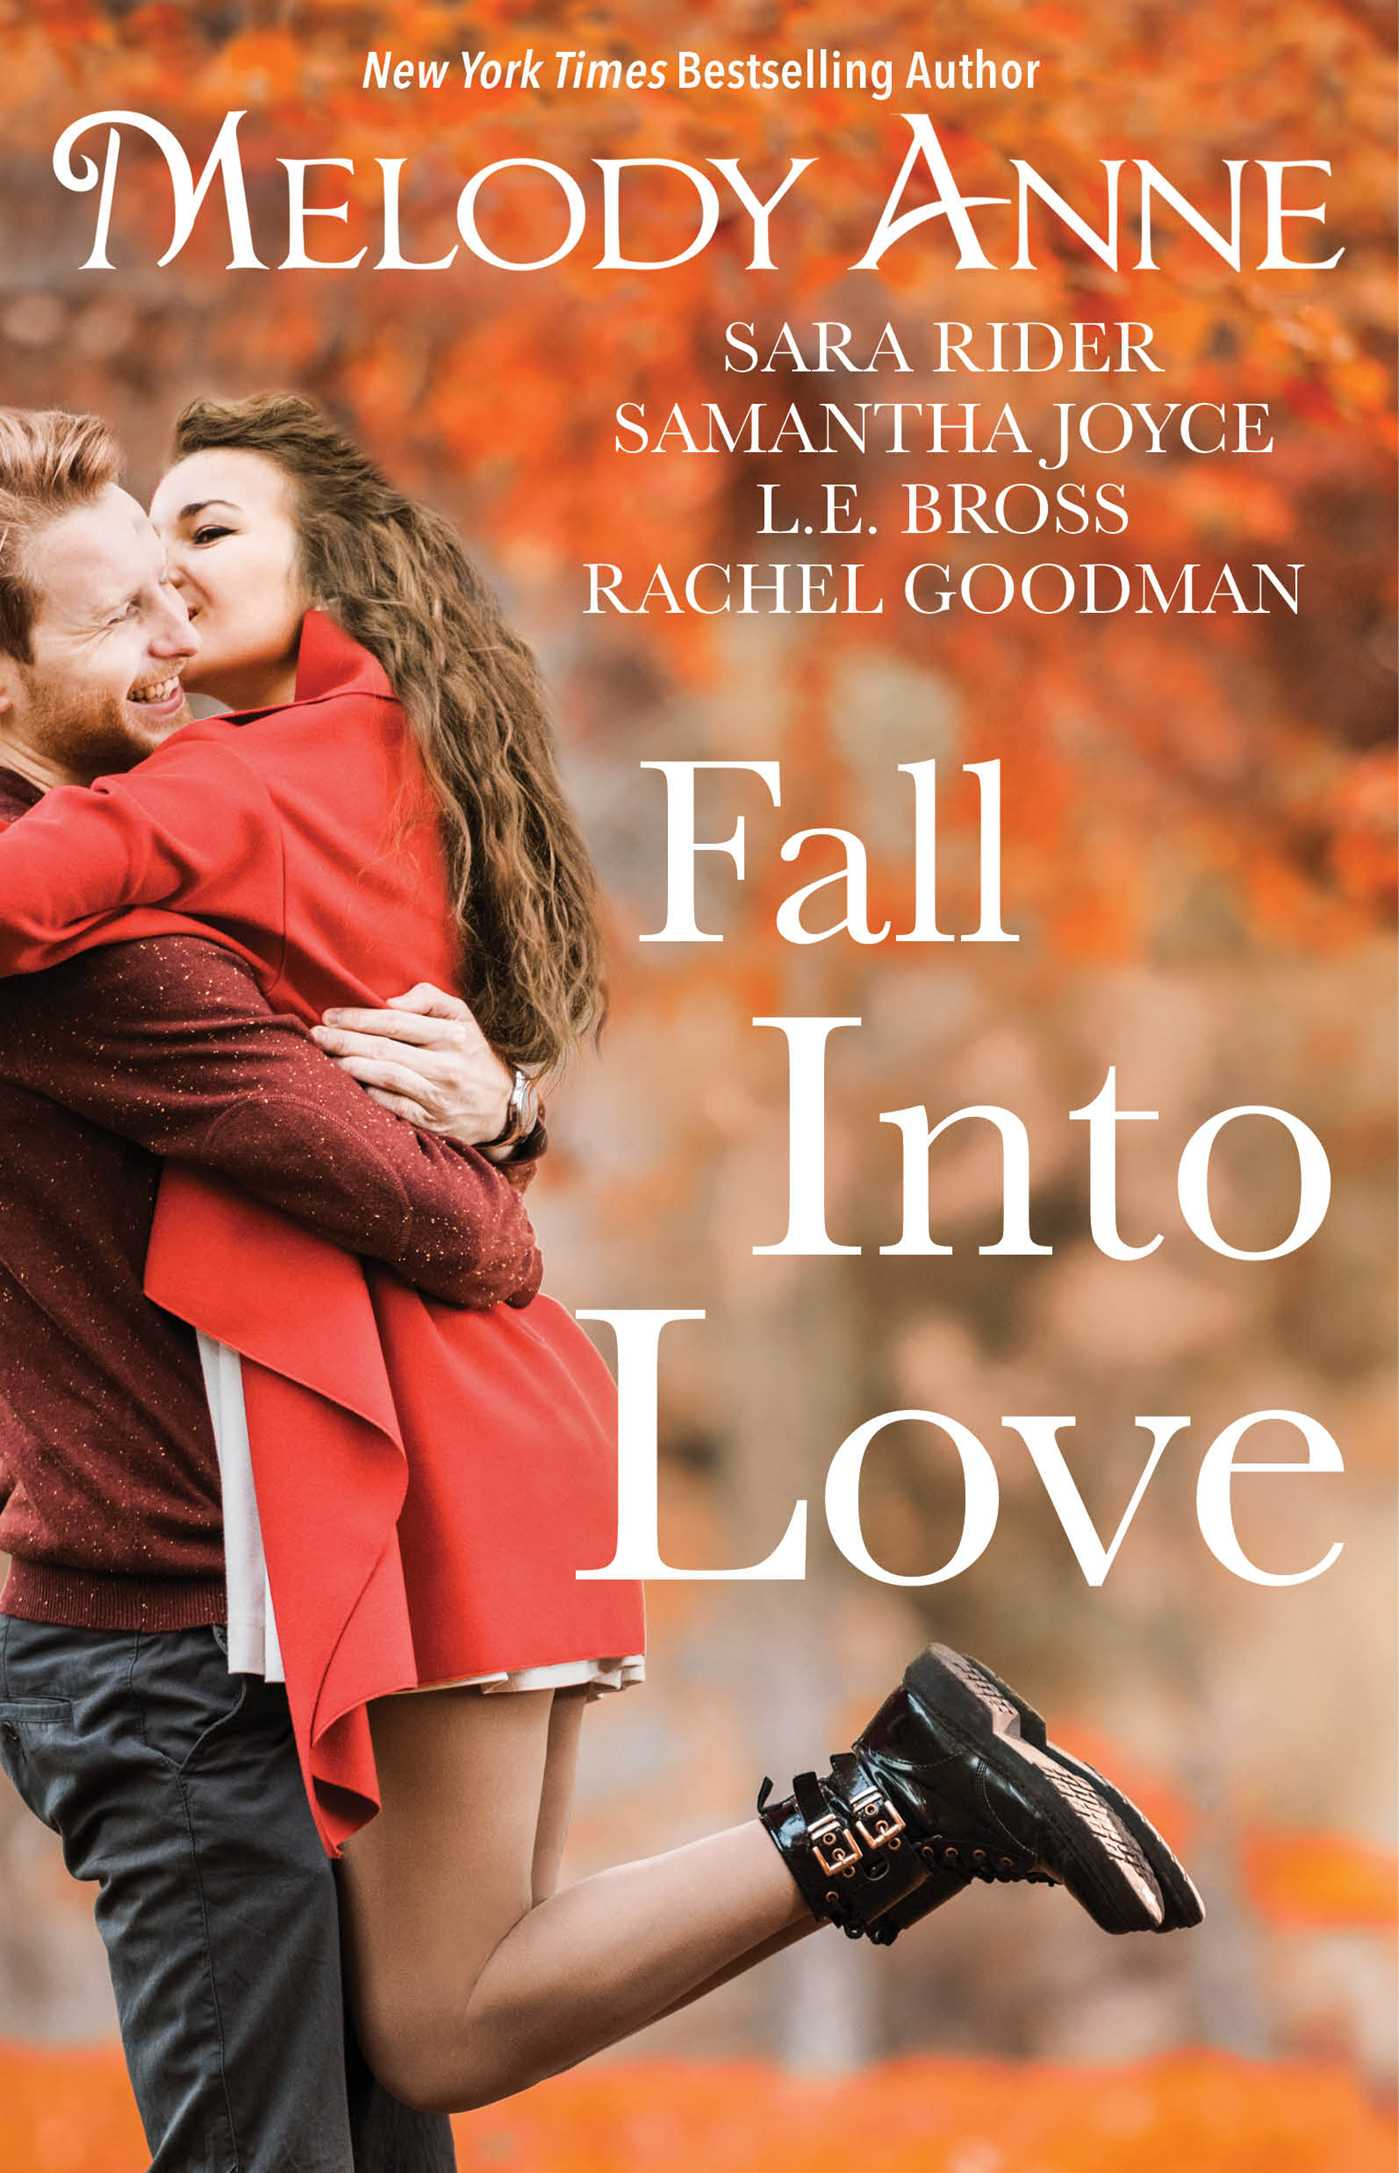 Fall into love 9781501151767 hr